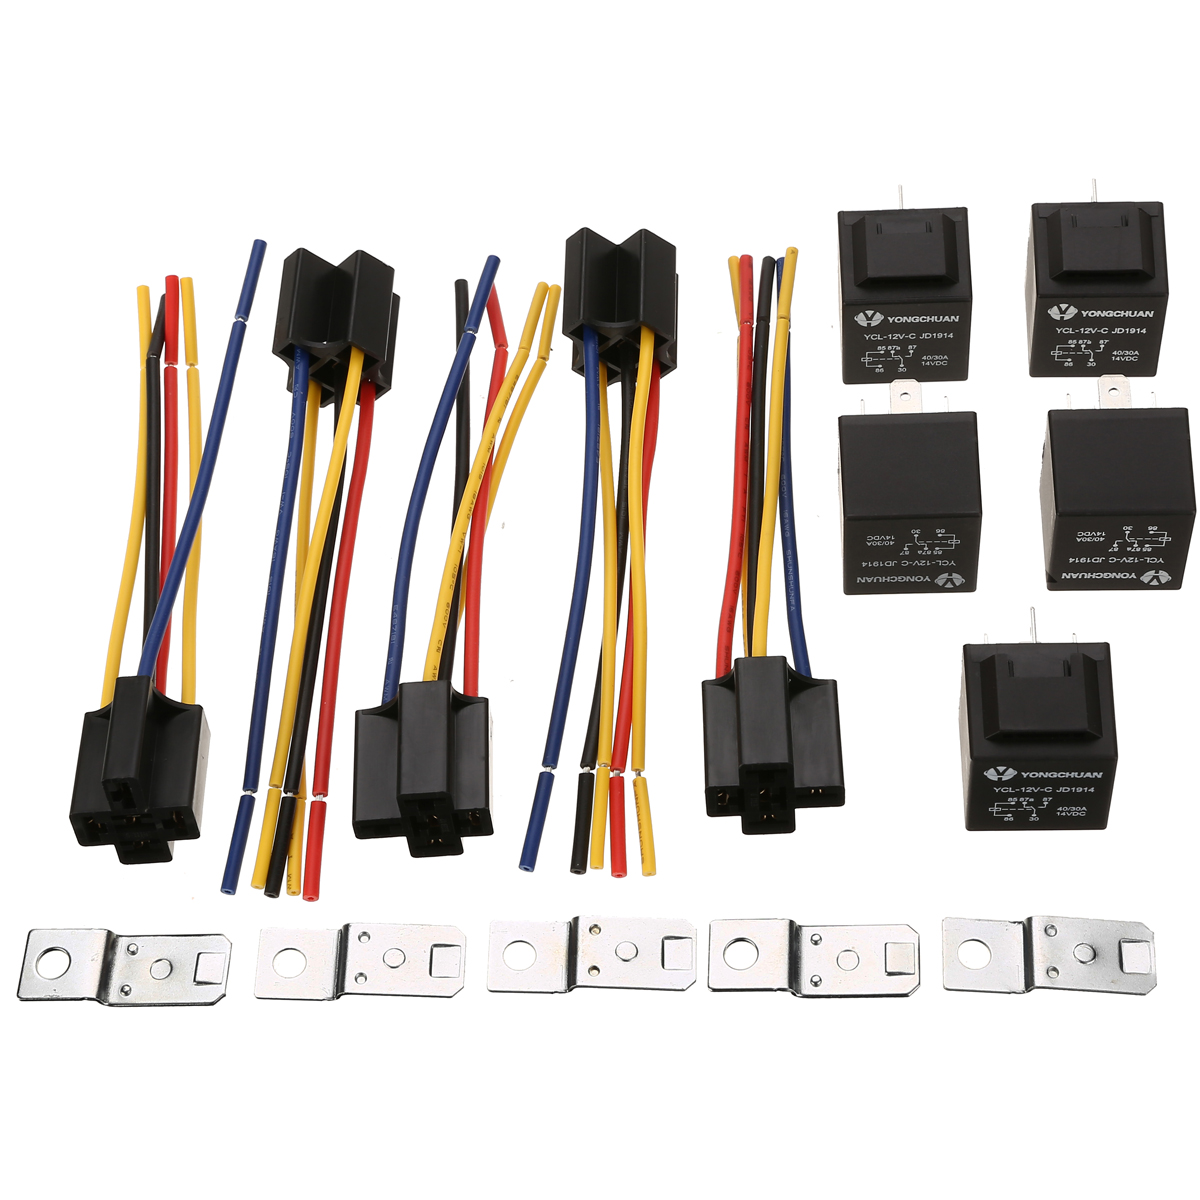 5 Set Car Auto Relay & Socket SPDT 5 Pin 5 Wire <font><b>DC</b></font> 12V <font><b>12</b></font> Volt <font><b>40A</b></font> AMP Black Truck Accessories image